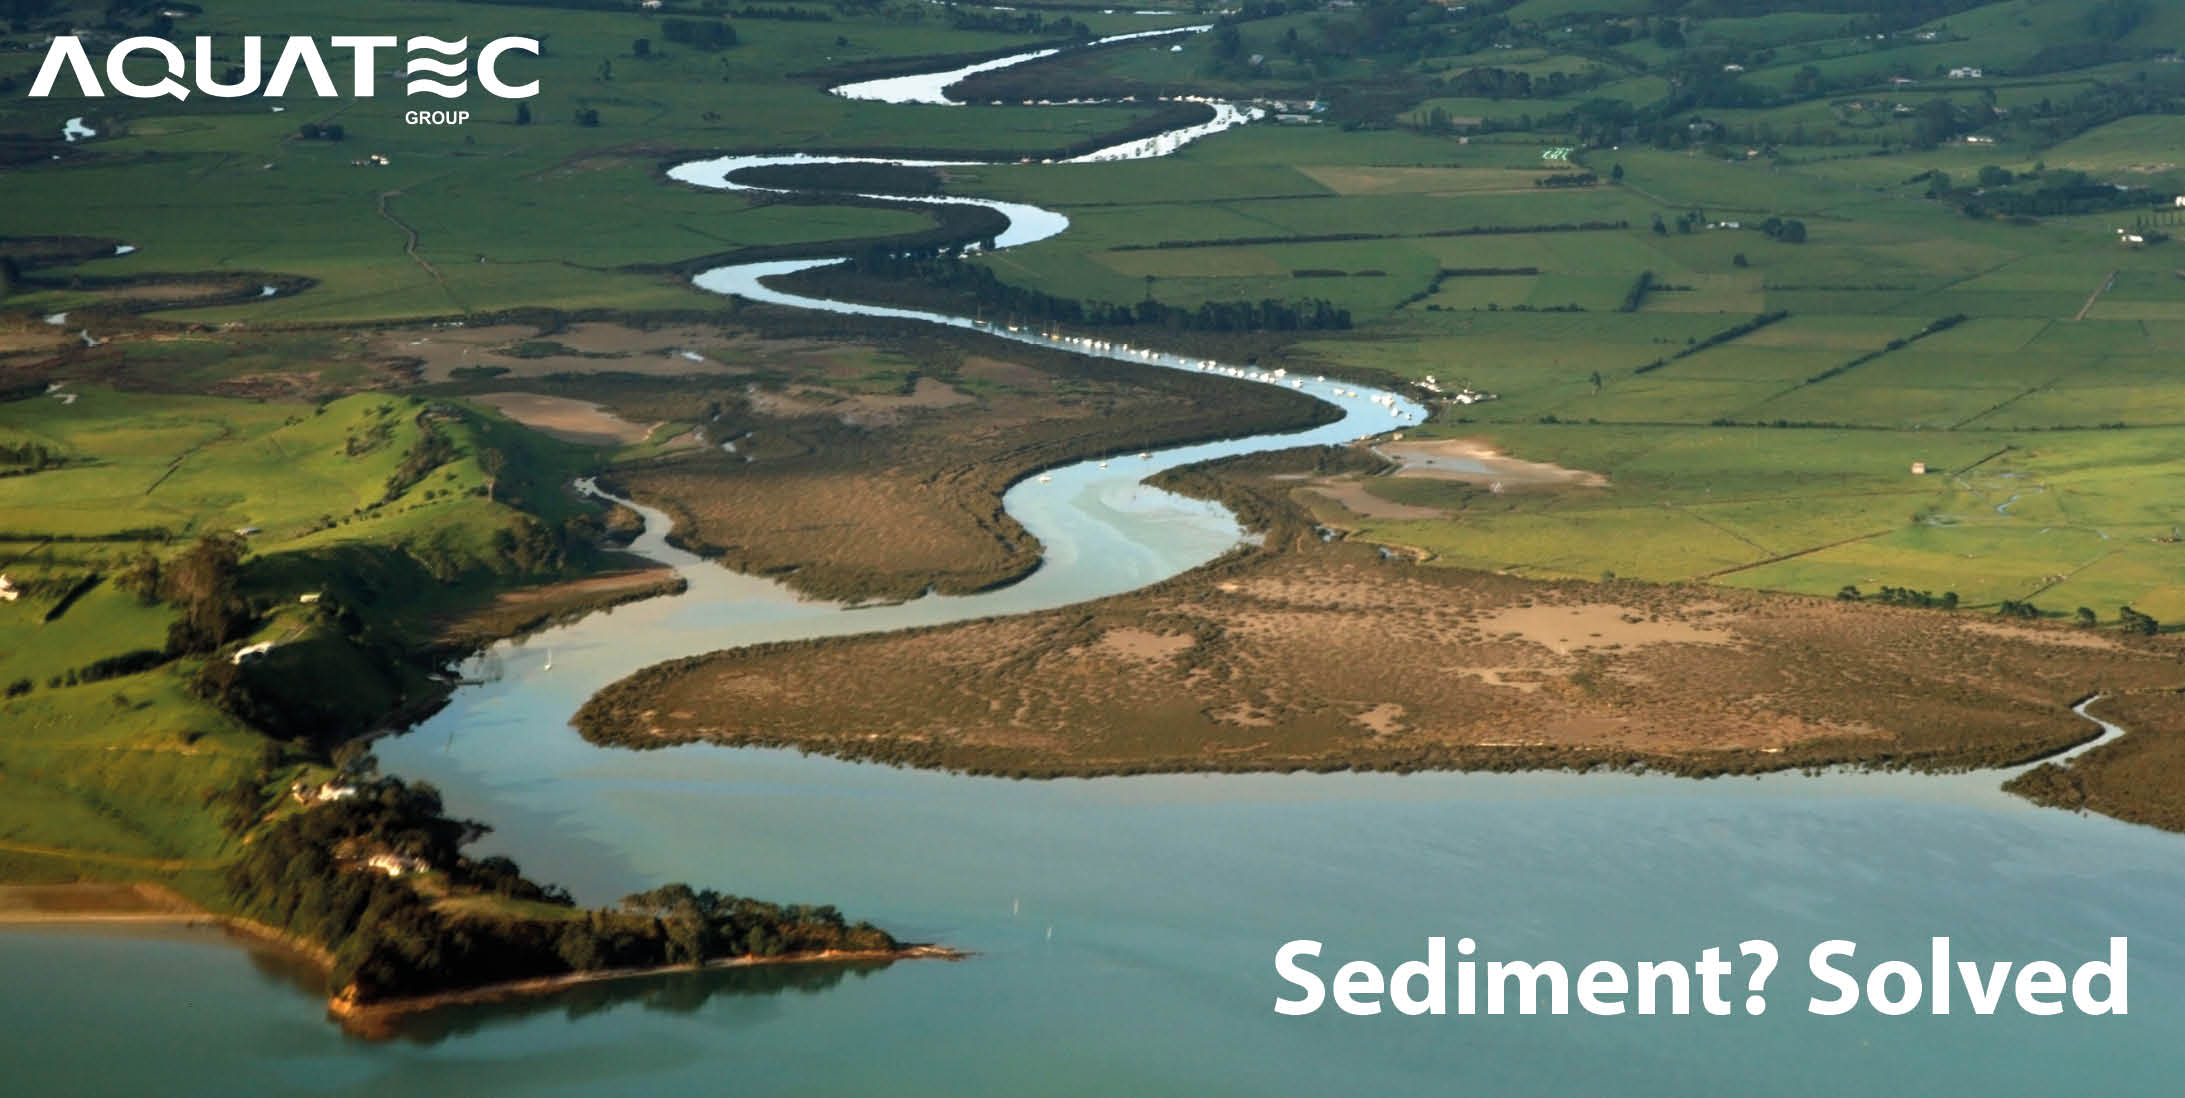 Sediment solved homepage image